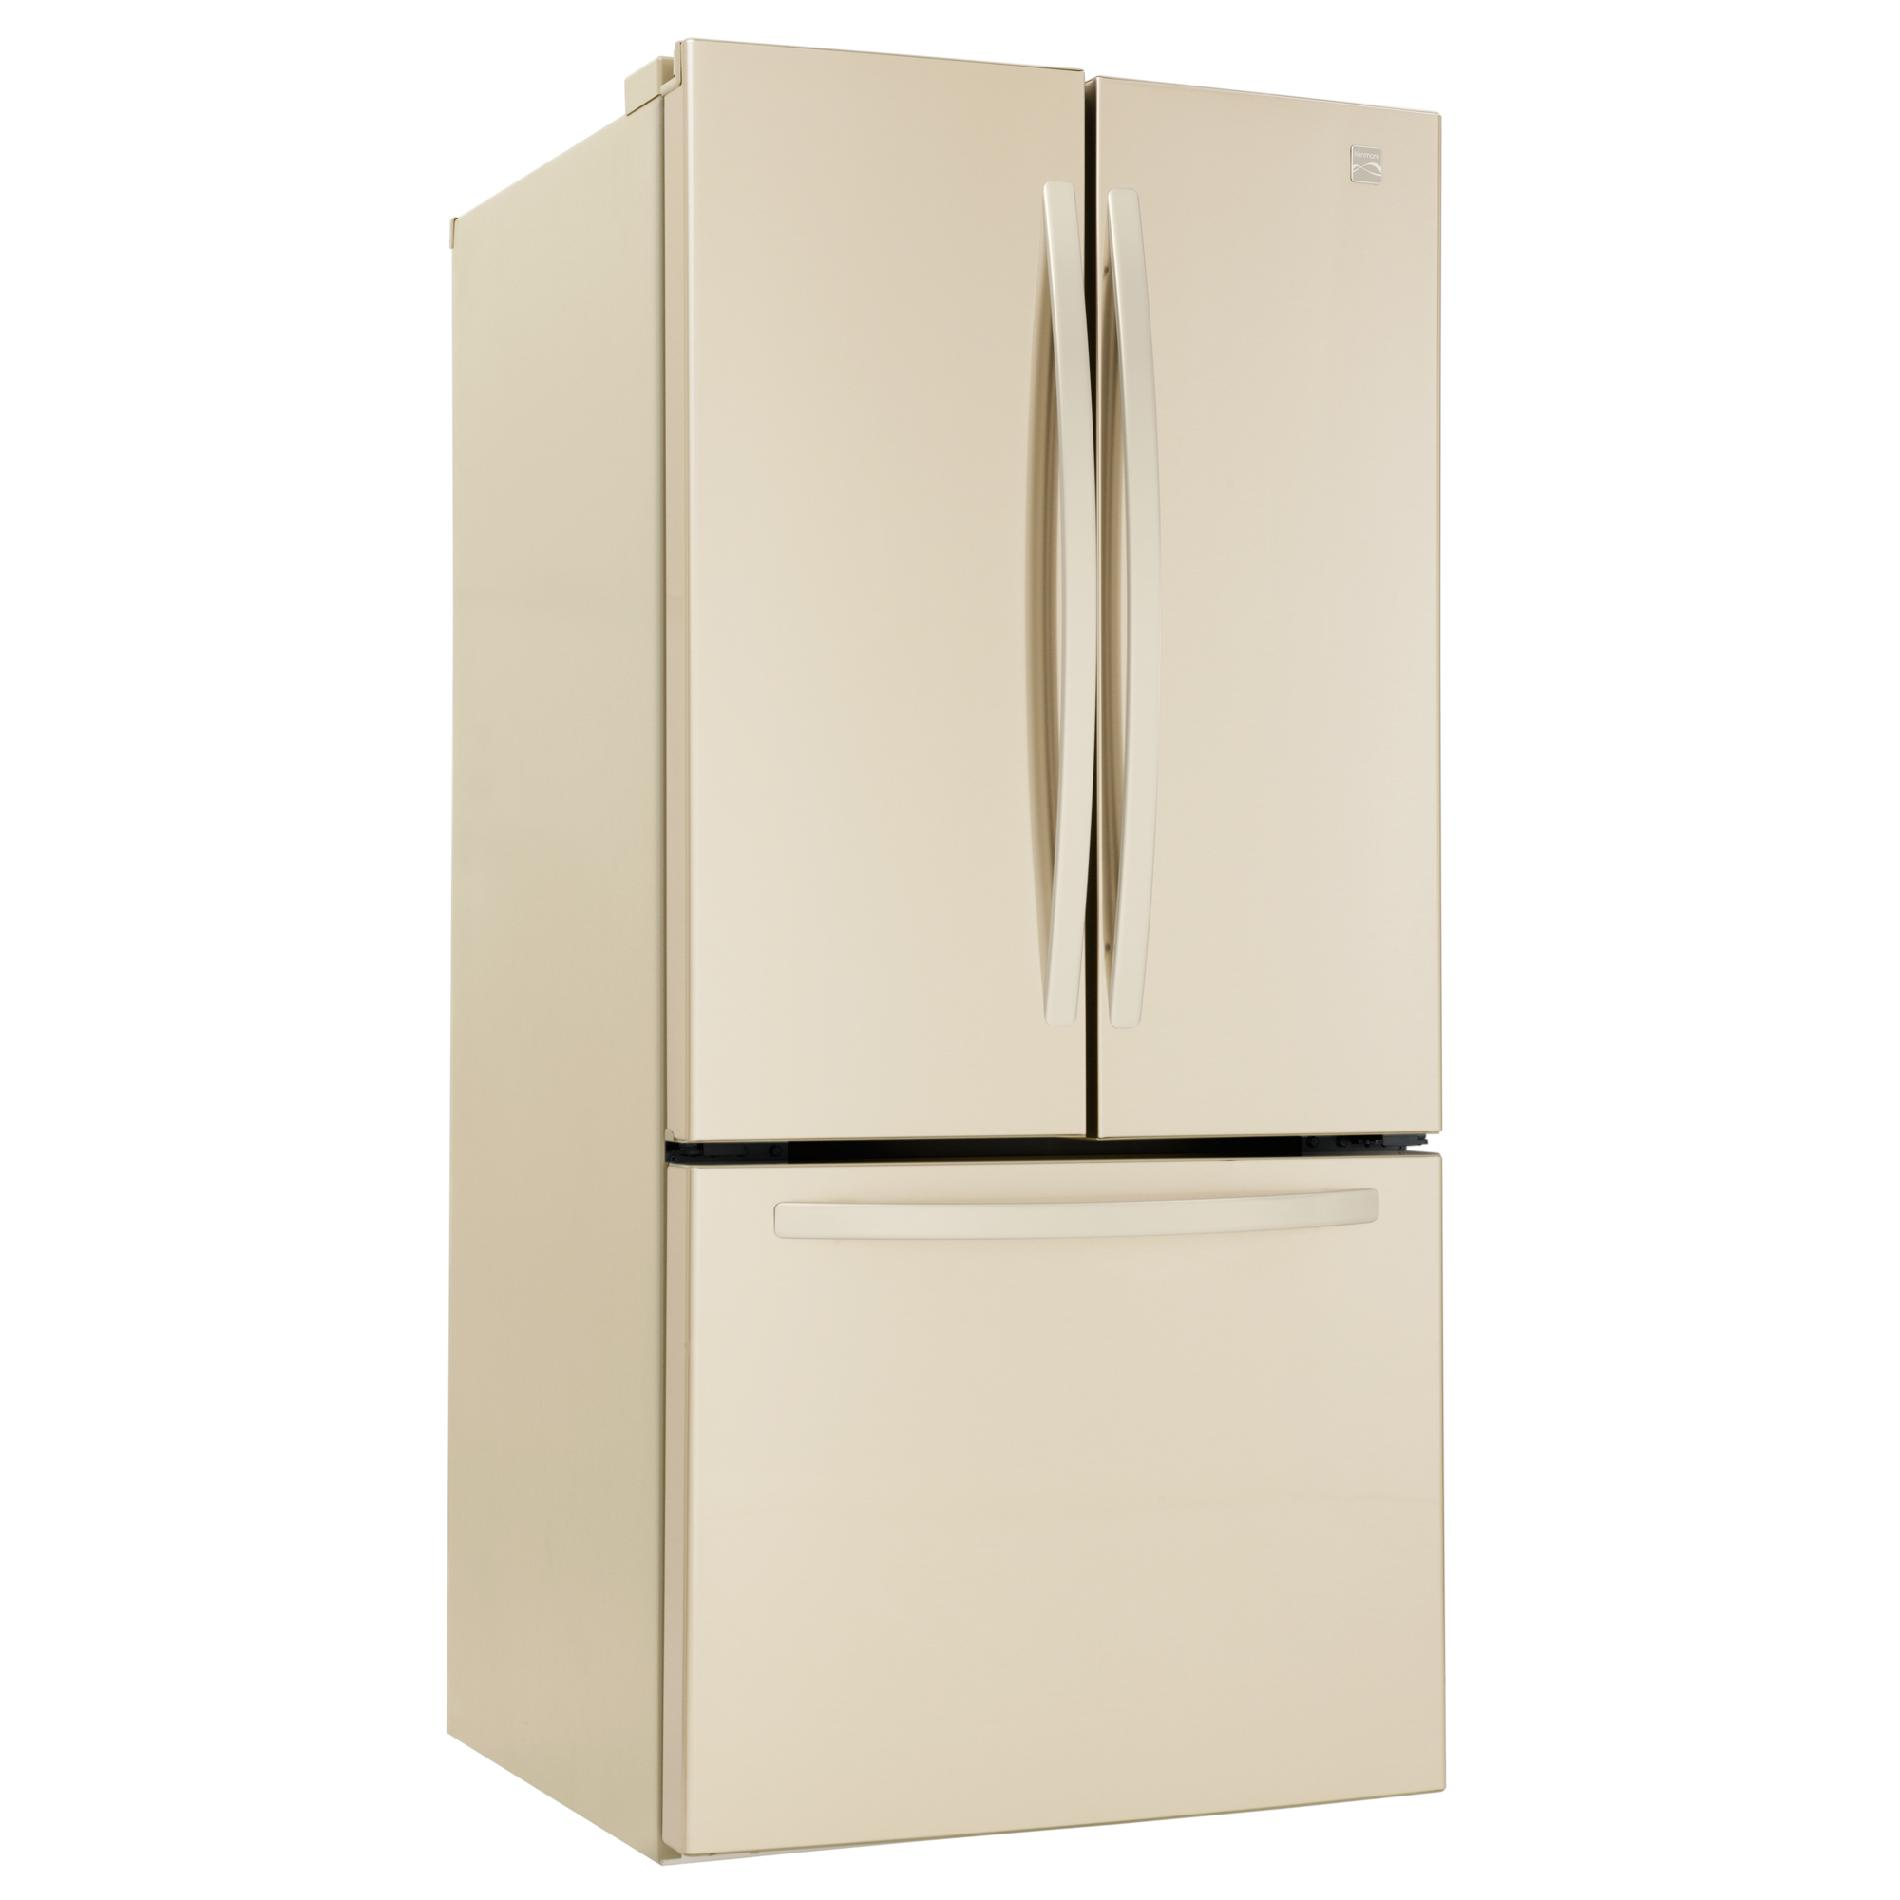 Kenmore 71314 23.9 Cu. Ft. French Door Bottom-Freezer Bisque Refrigerator